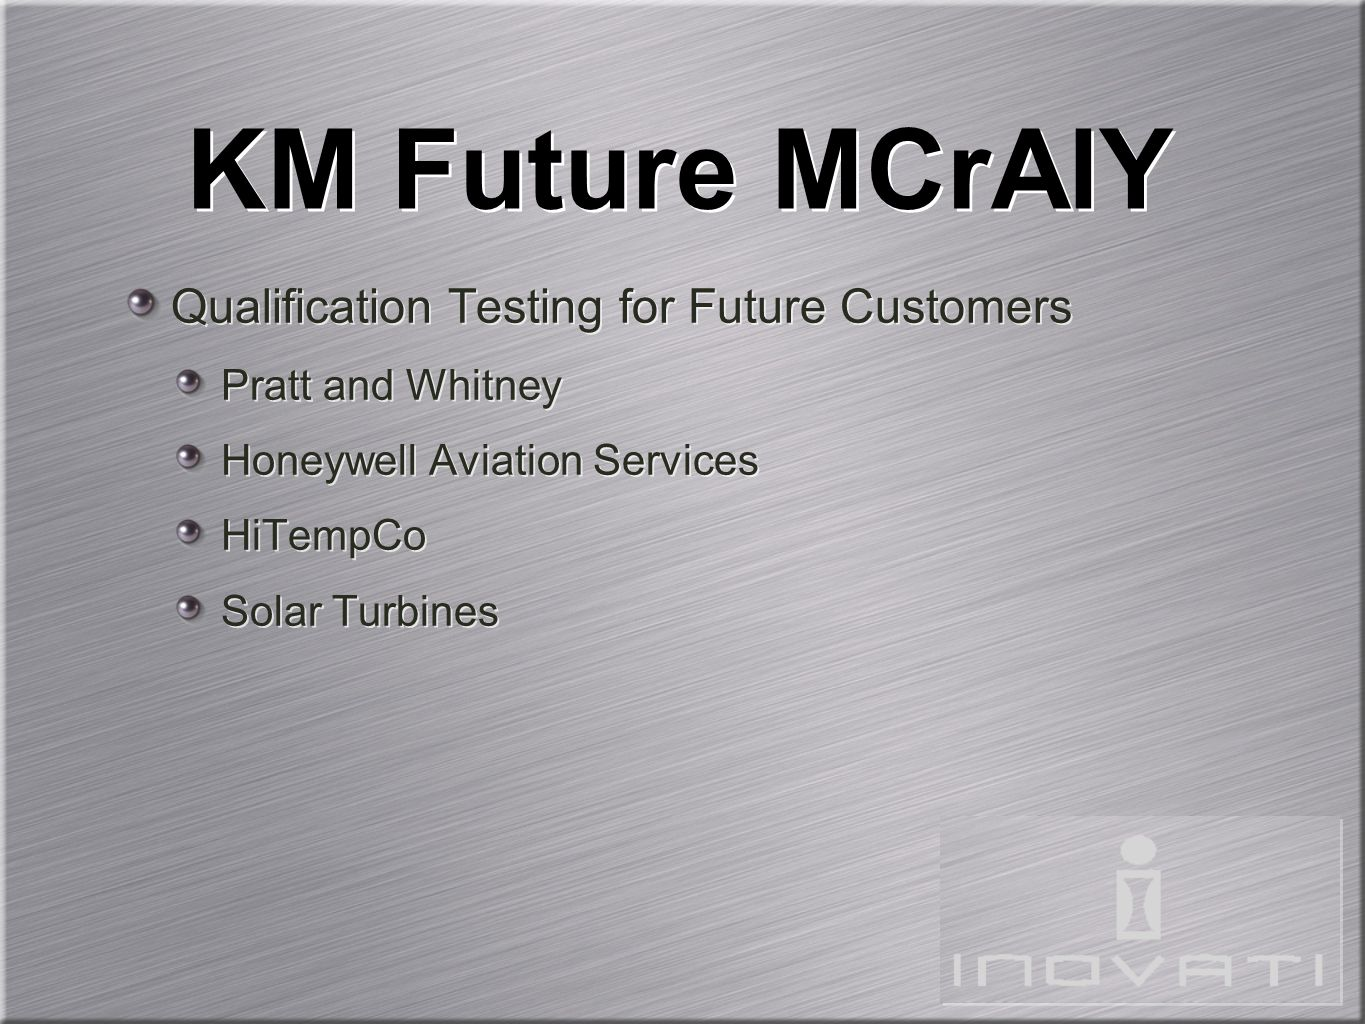 KM Future MCrAlY Qualification Testing for Future Customers